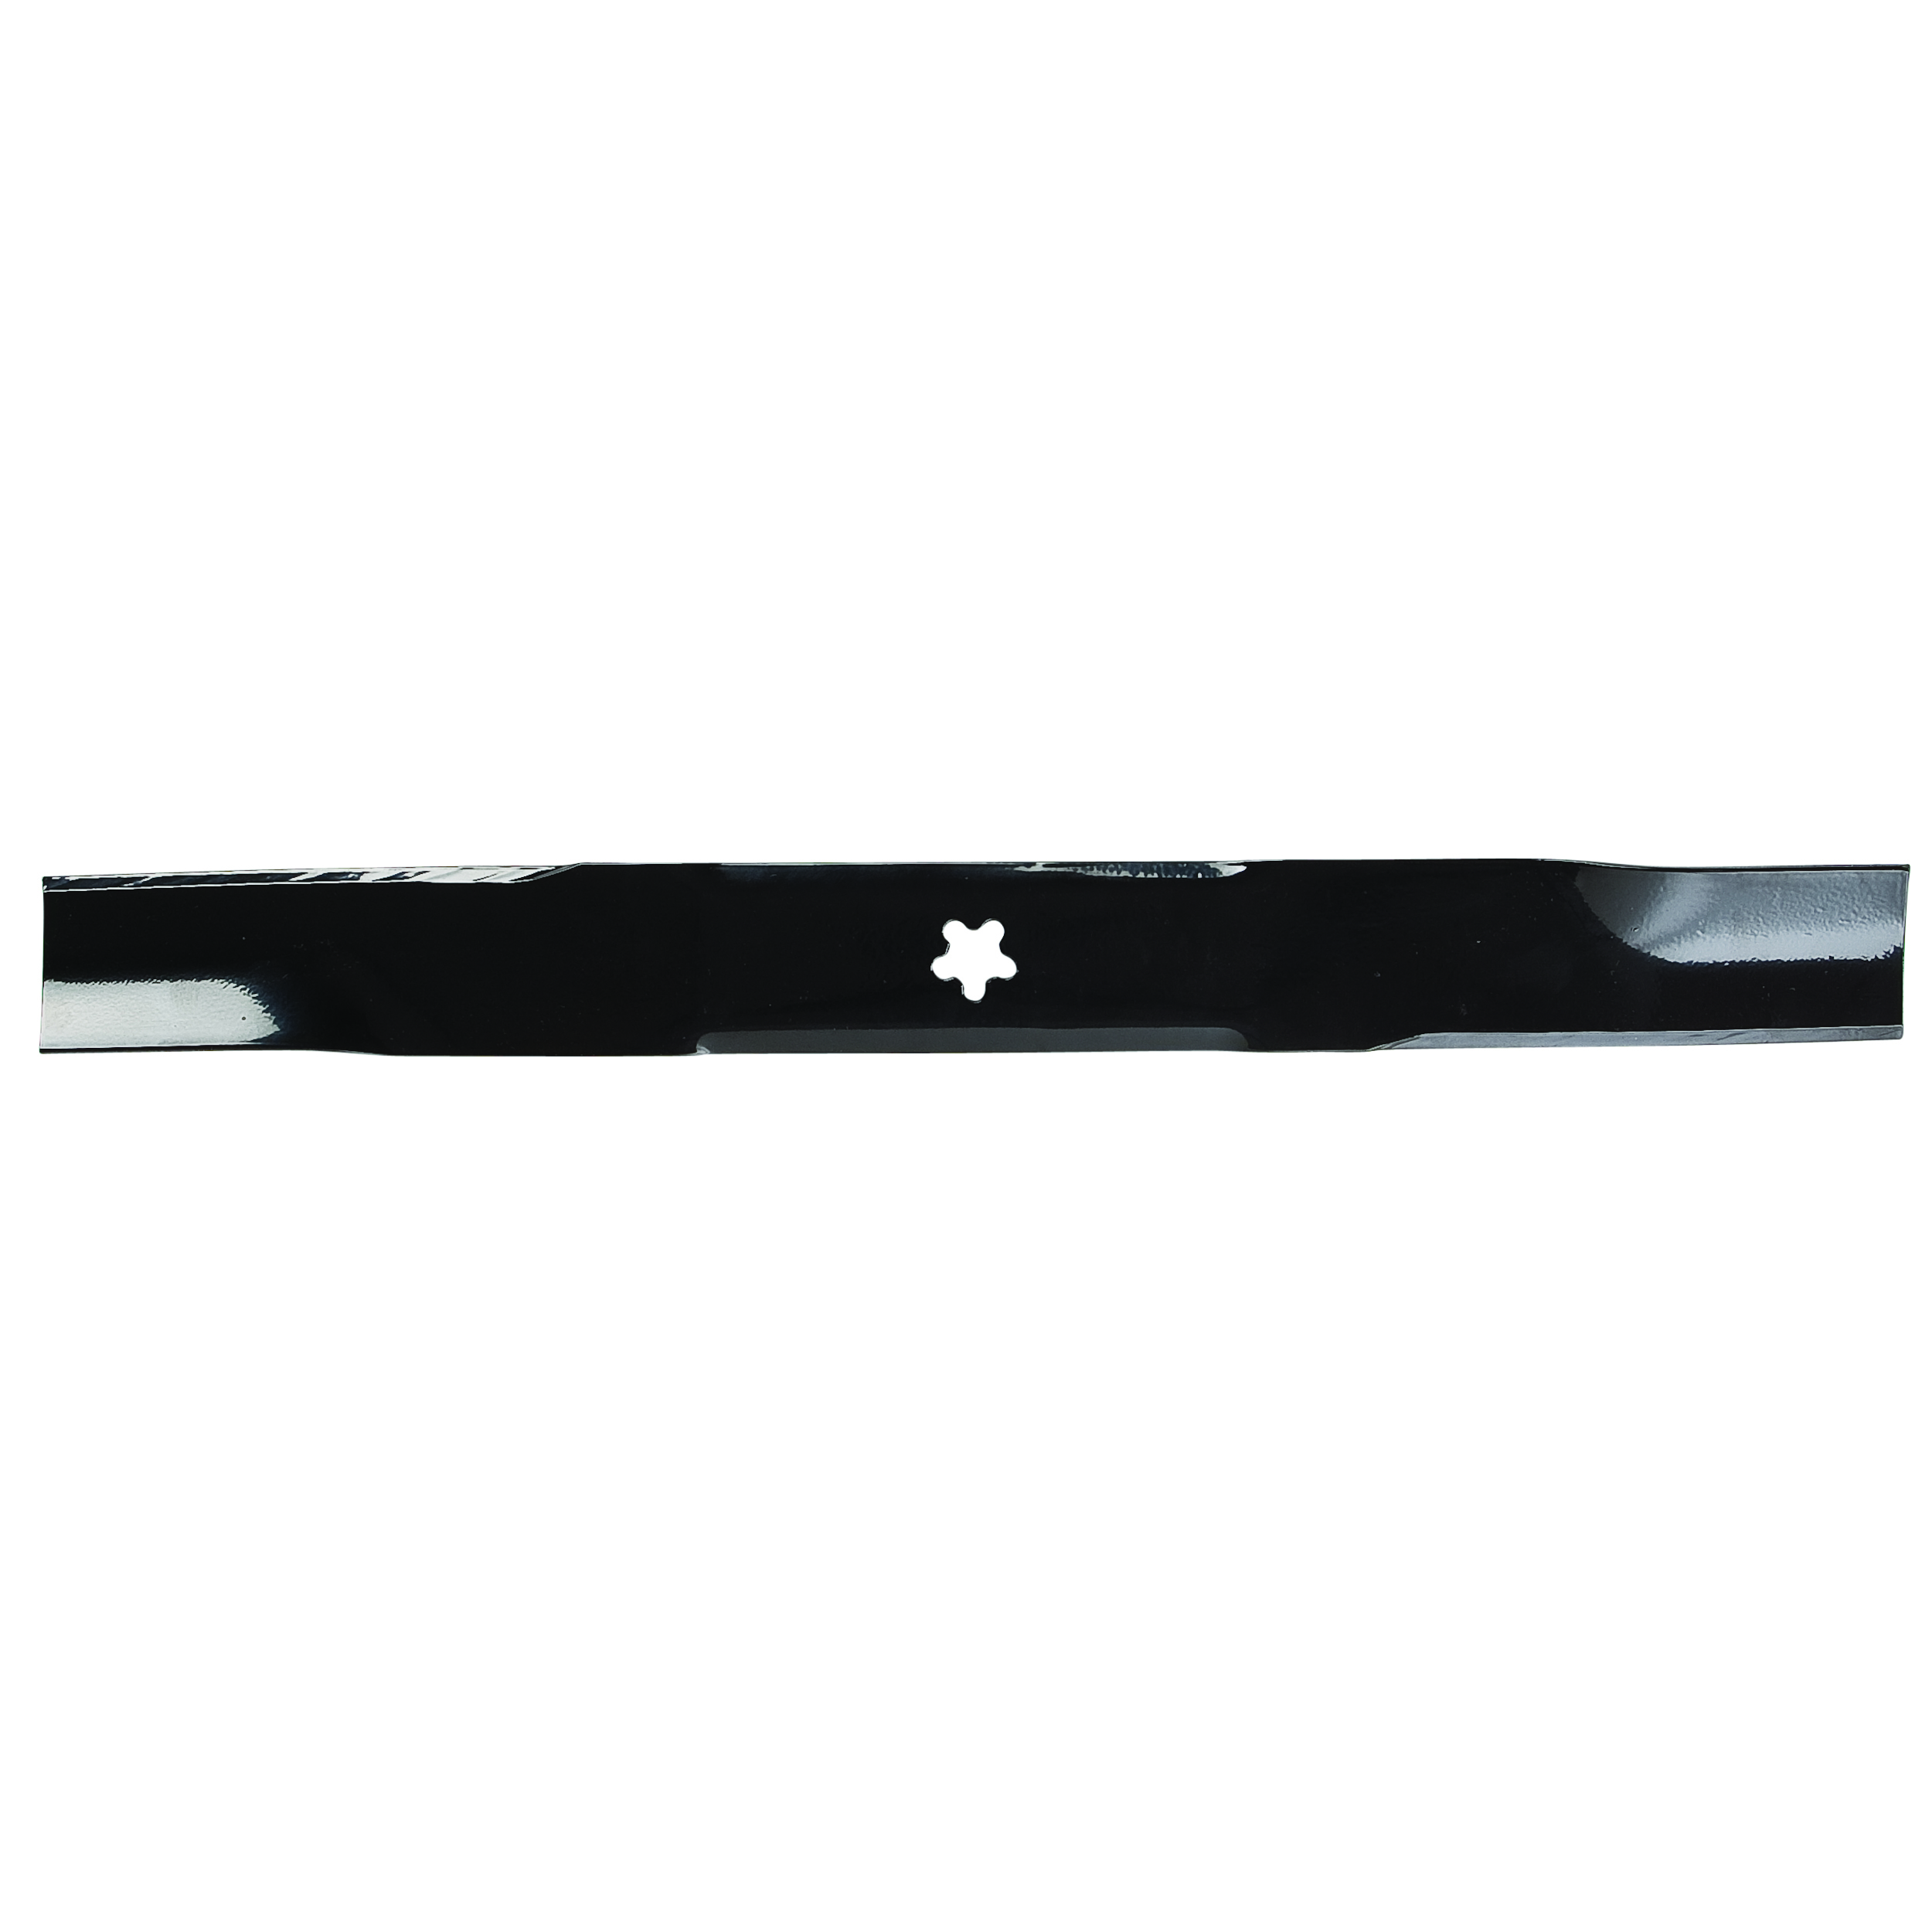 Standard Lawn Mower Blade For Husqvarna # 112079